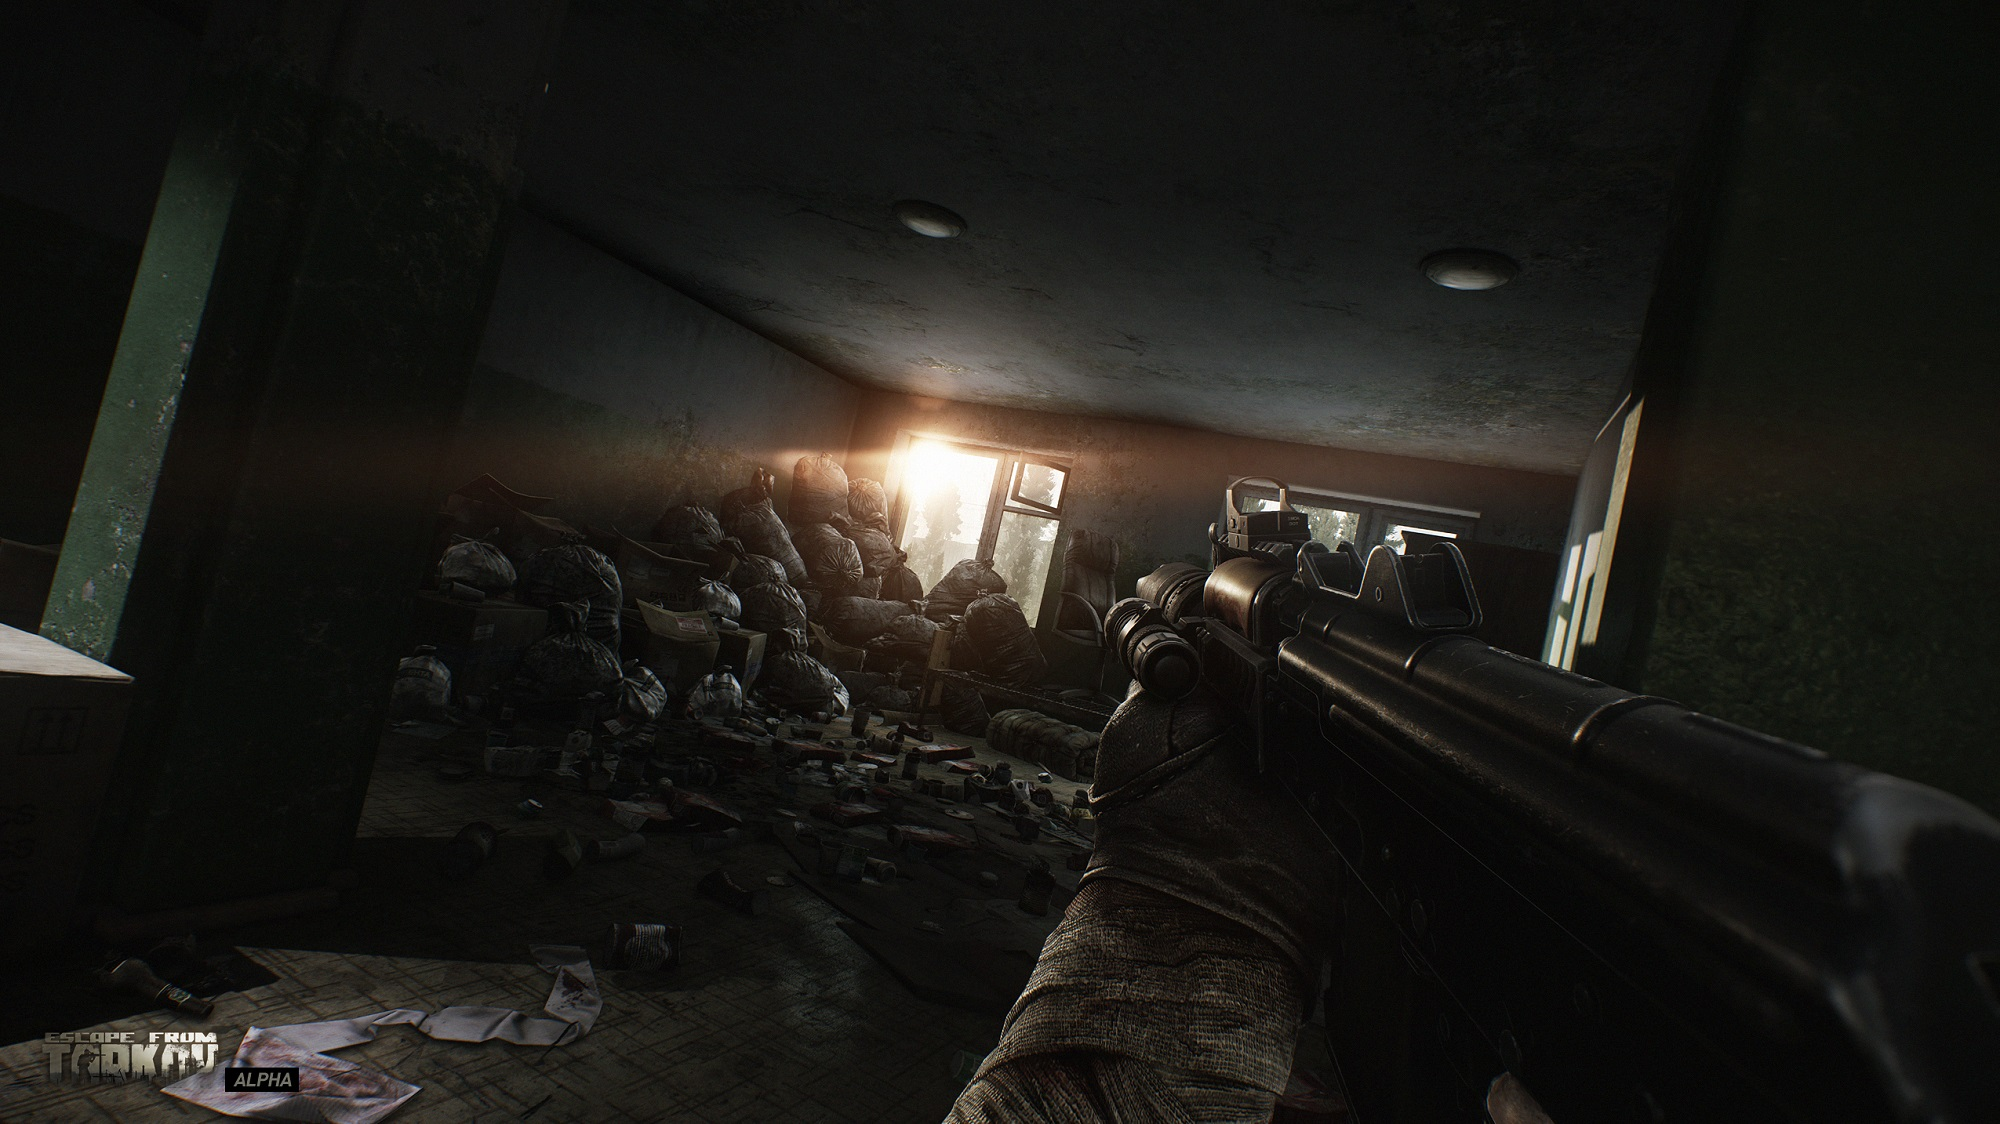 Escape from Tarkov Giveaway - 25 Game Codes Up for Grabs